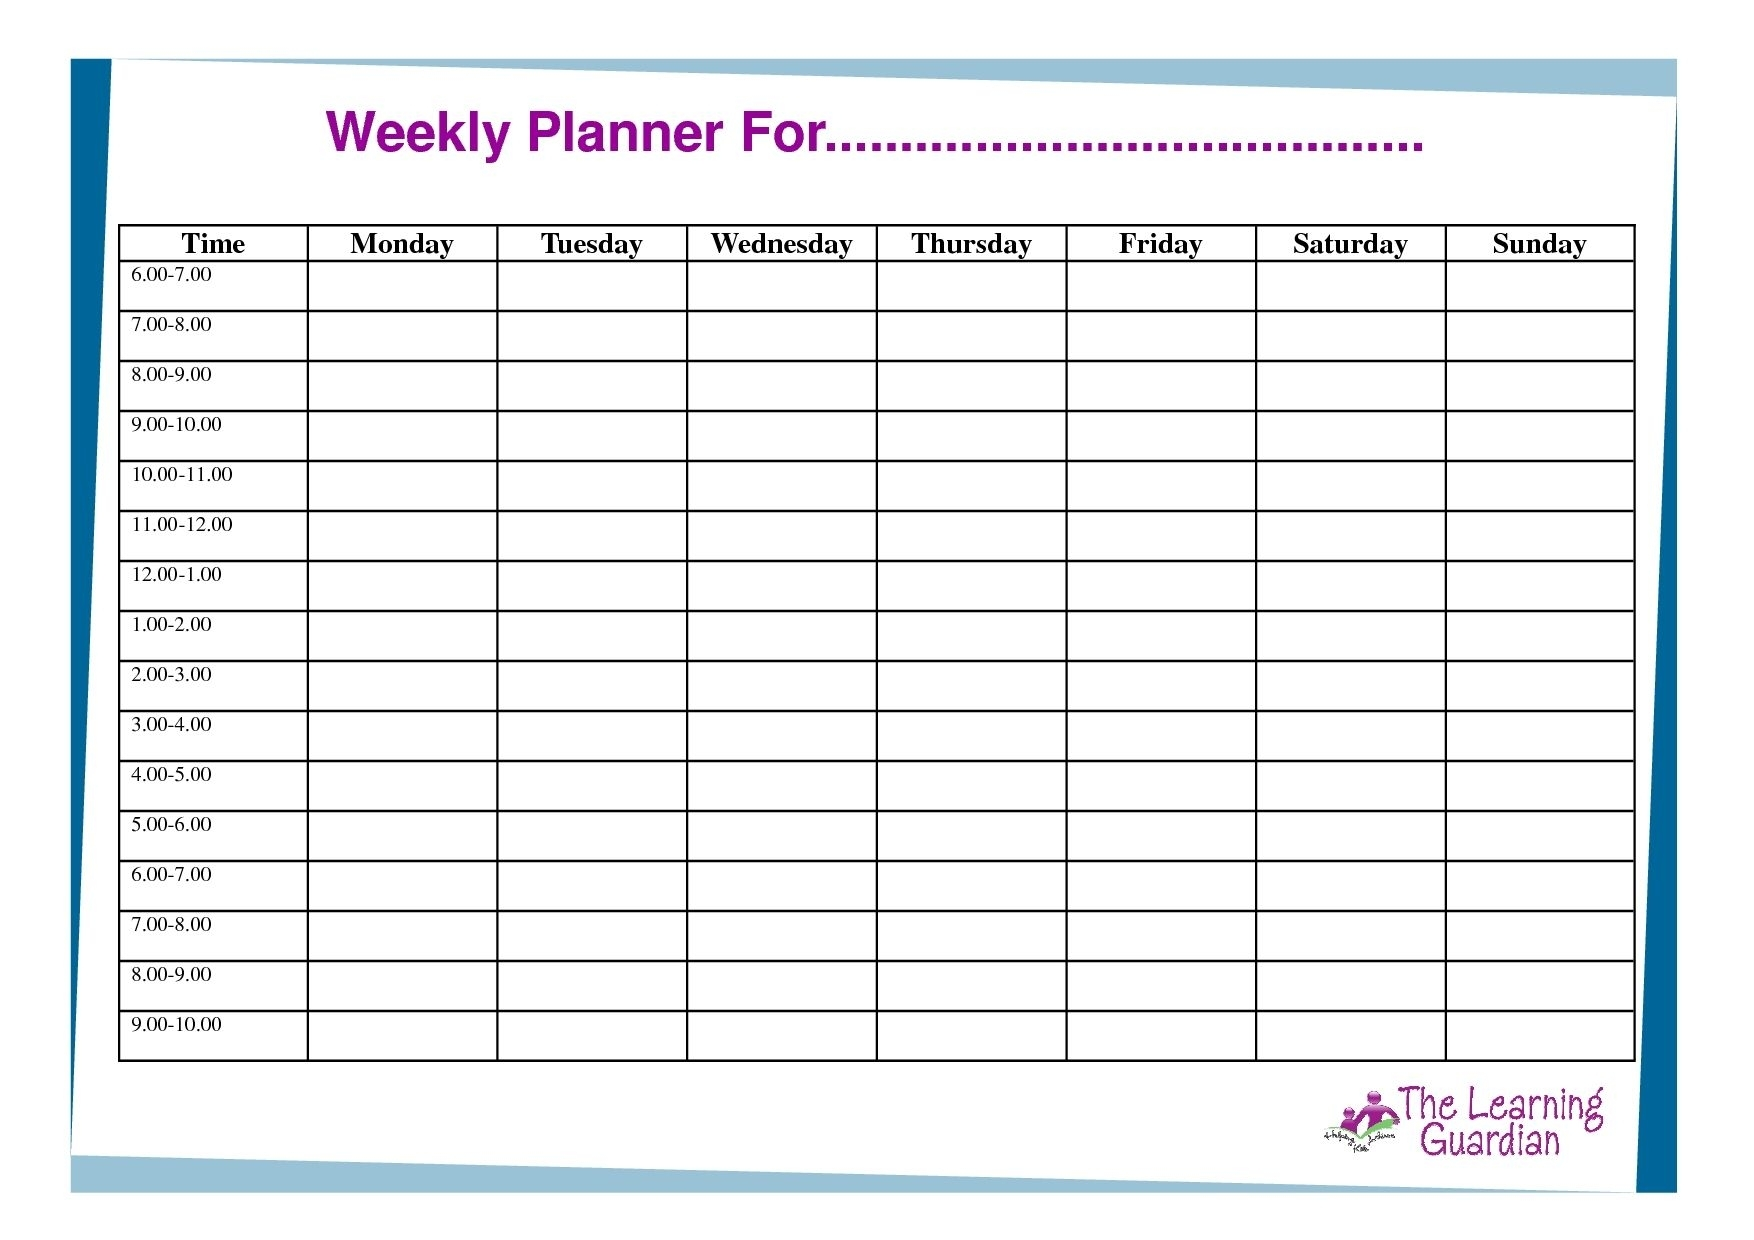 Free Printable Weekly Calendar Templates Weekly Planner For